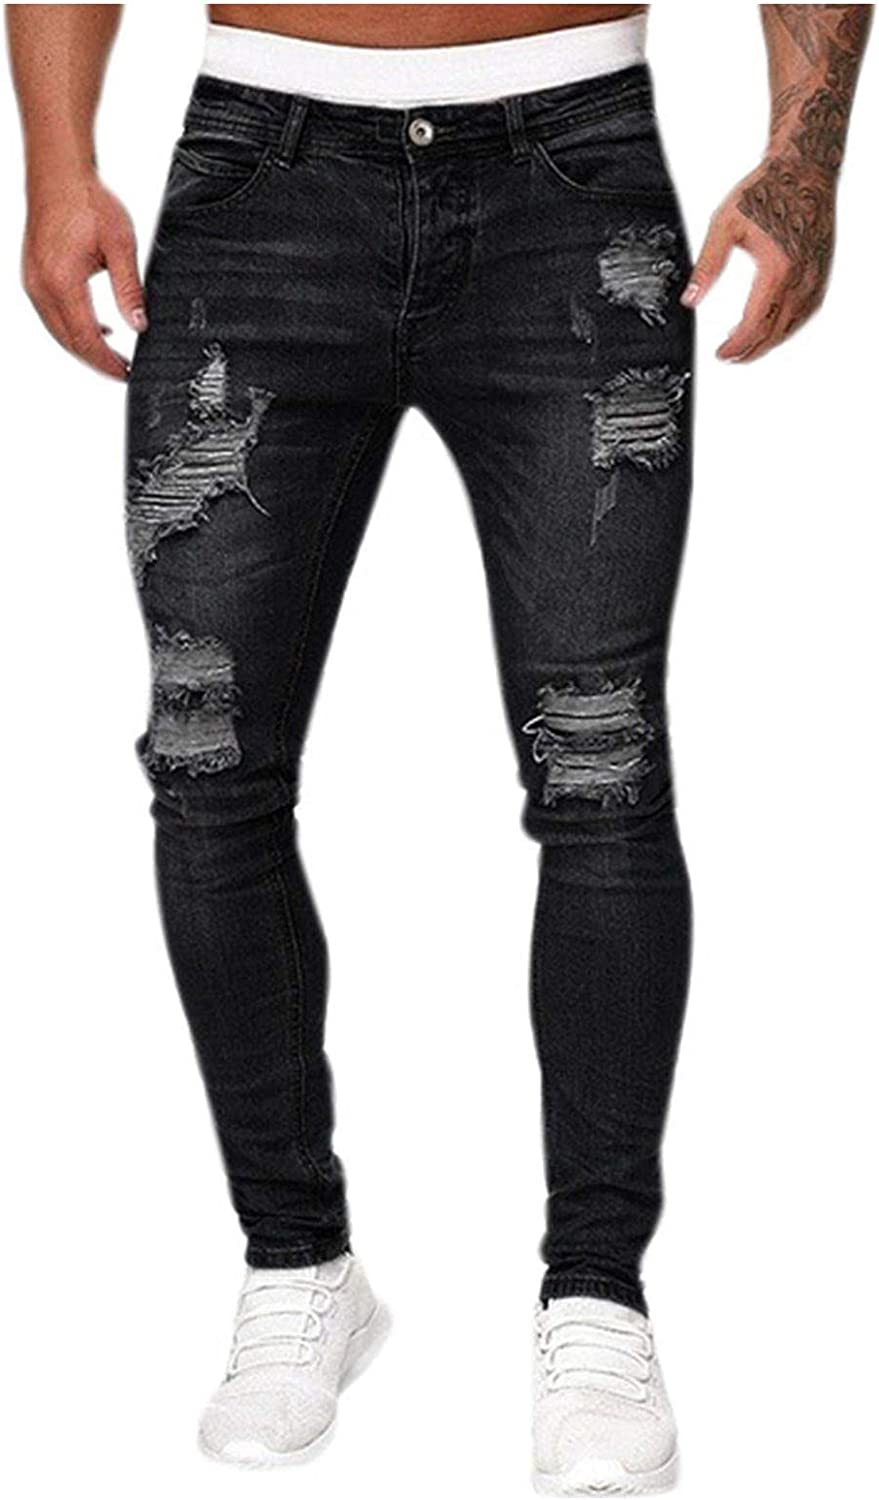 iCODOD Men's Stretchy Ripped At the price Skinny Ranking TOP2 Tapered Jeans Fit Denim Slim